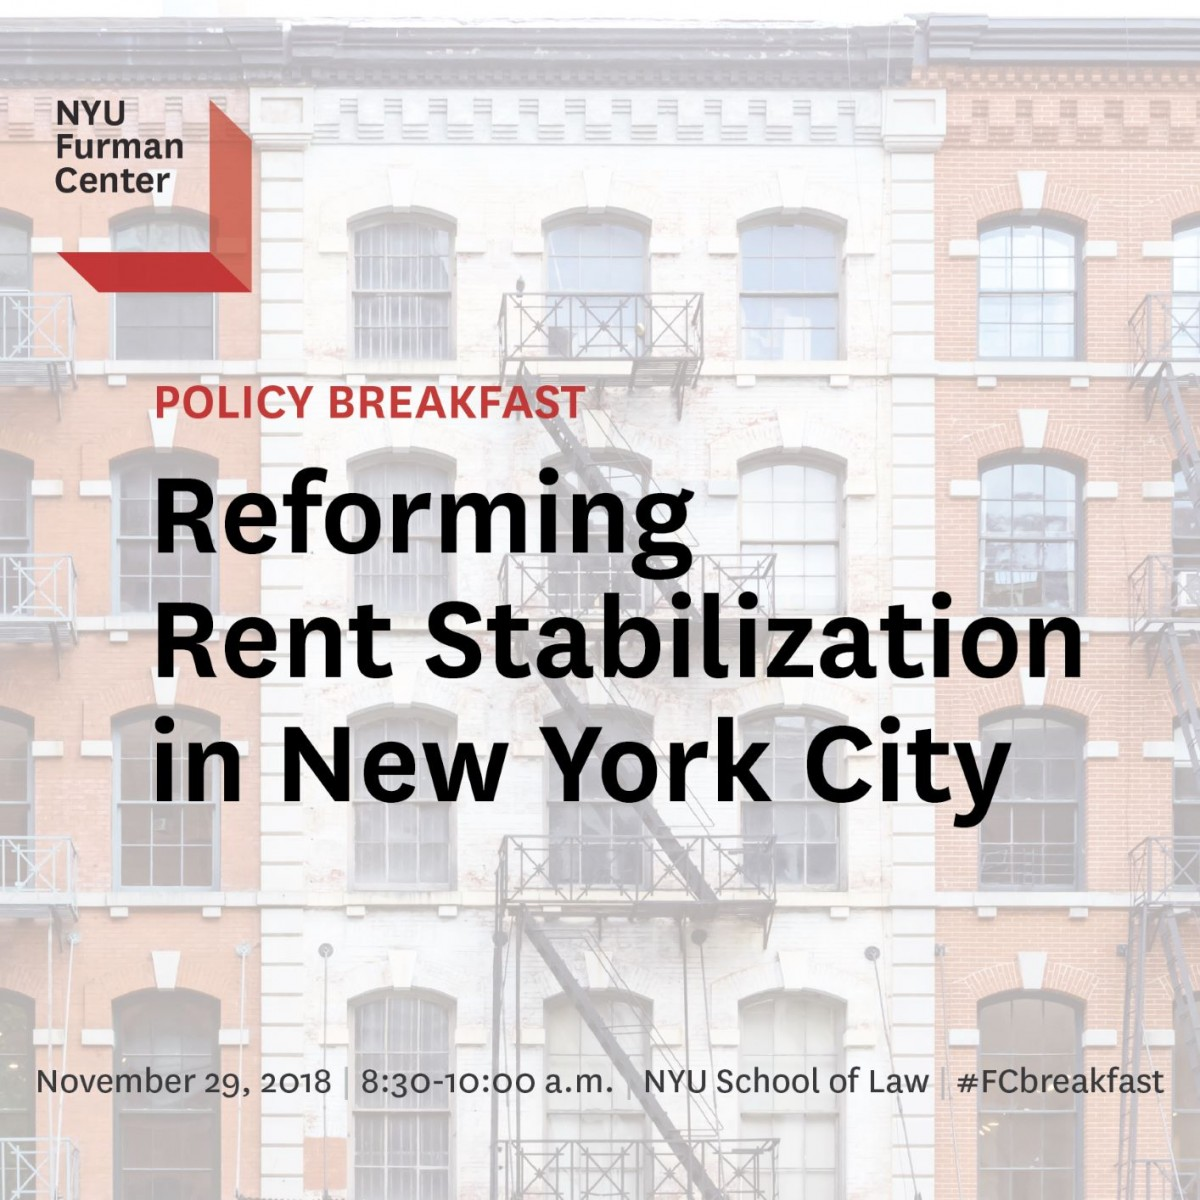 Rents In New York City: VIDEO: Policy Breakfast On Reforming Rent Stabilization In